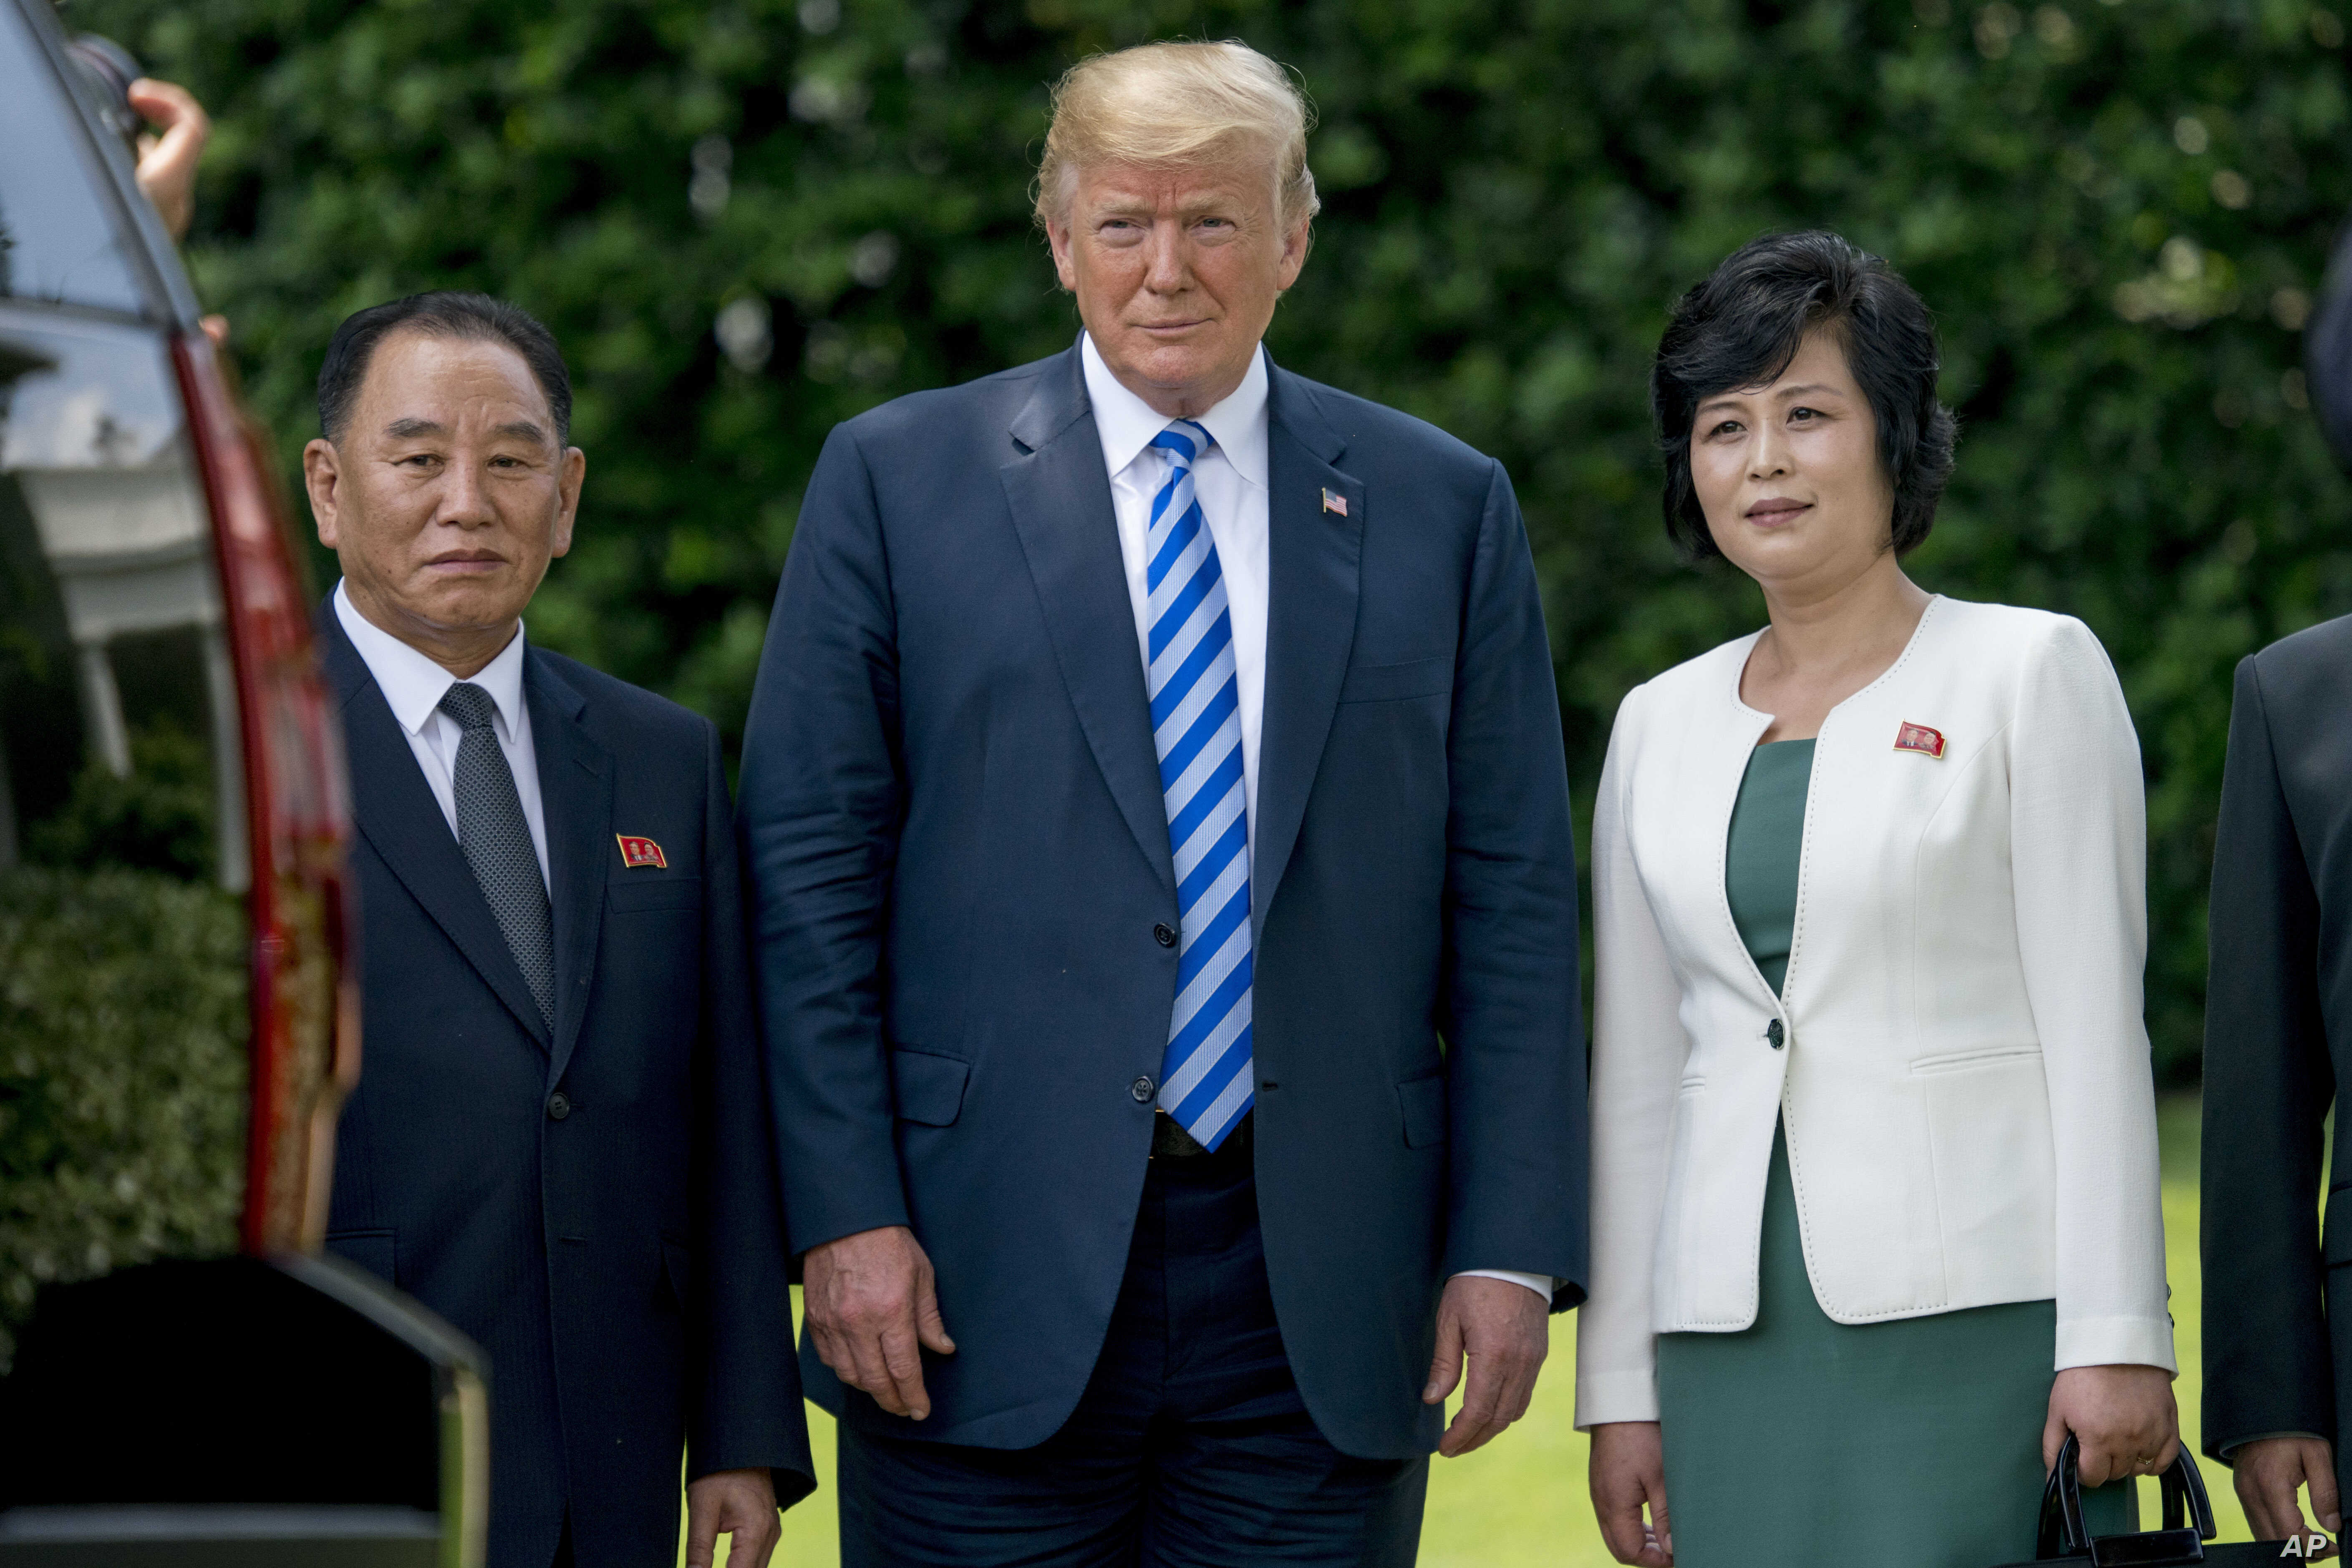 FILE - From left, former North Korean military intelligence chief Kim Yong Chol, President Donald Trump, and Kim Song Hye, head of the Committee for the Peaceful Reunification of Korea of the Korean Workers' Party, pose for a photograph outside the O...